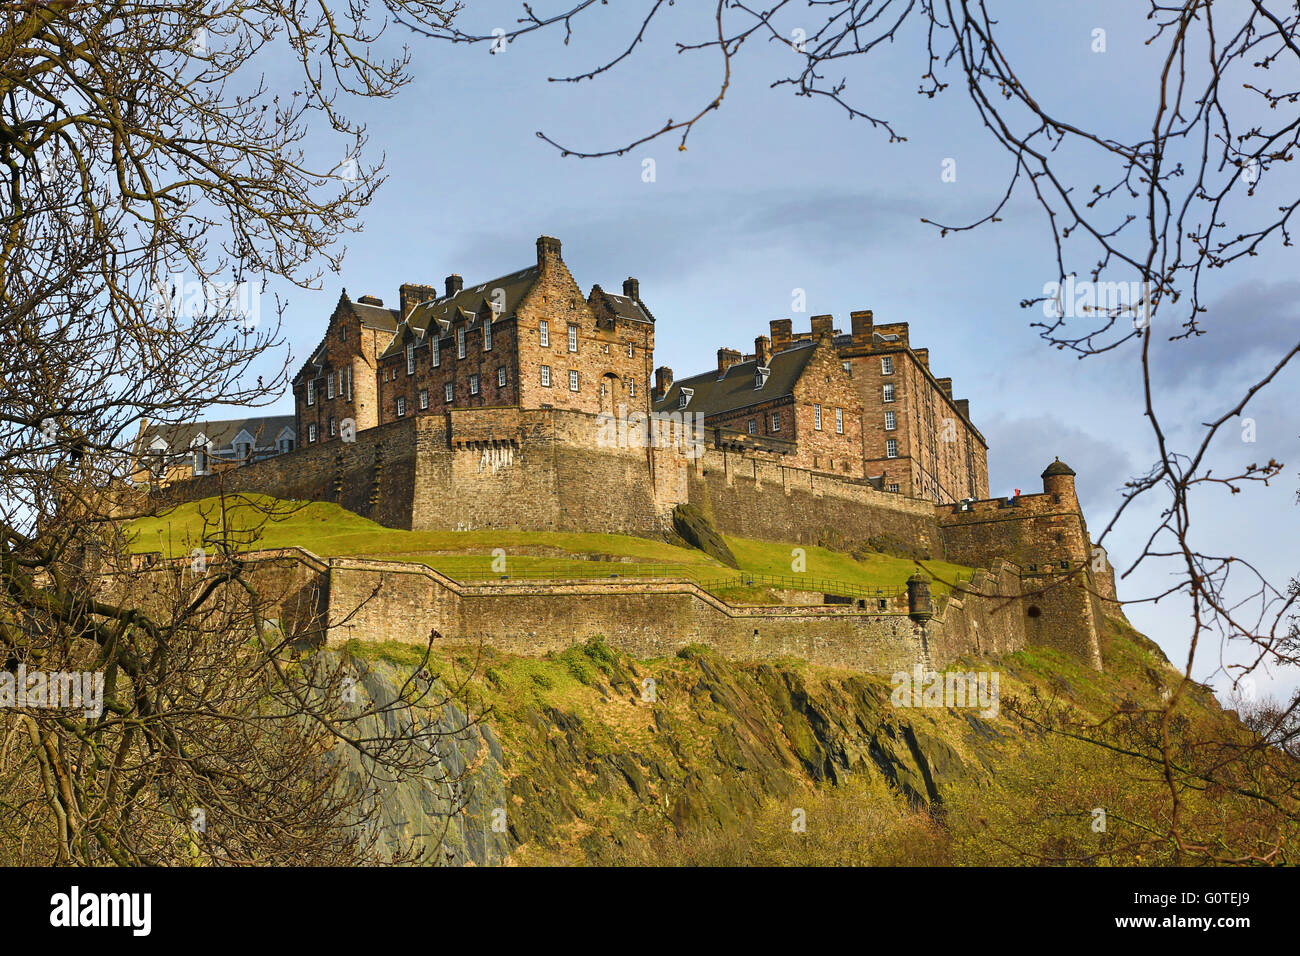 Edinburgh Castle in Edinburgh, Scotland, United Kingdom - Stock Image